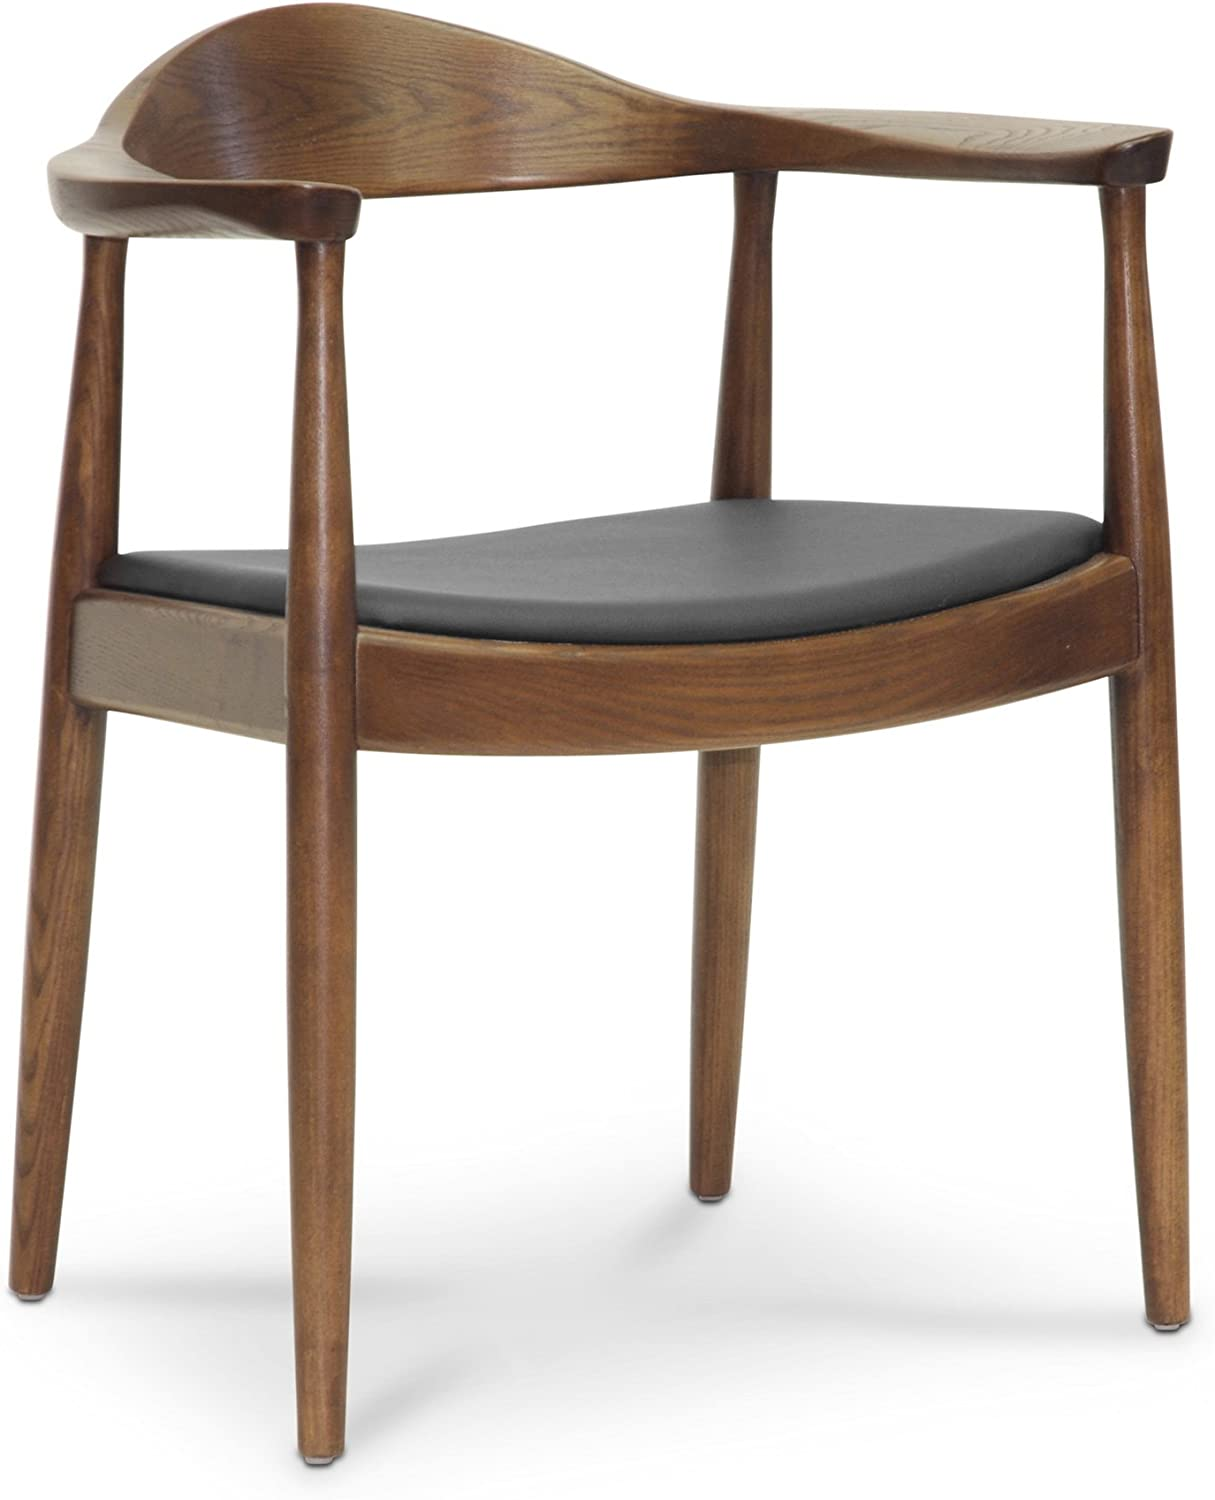 Baxton Studio Embick Mid-Century Modern Dining Chair